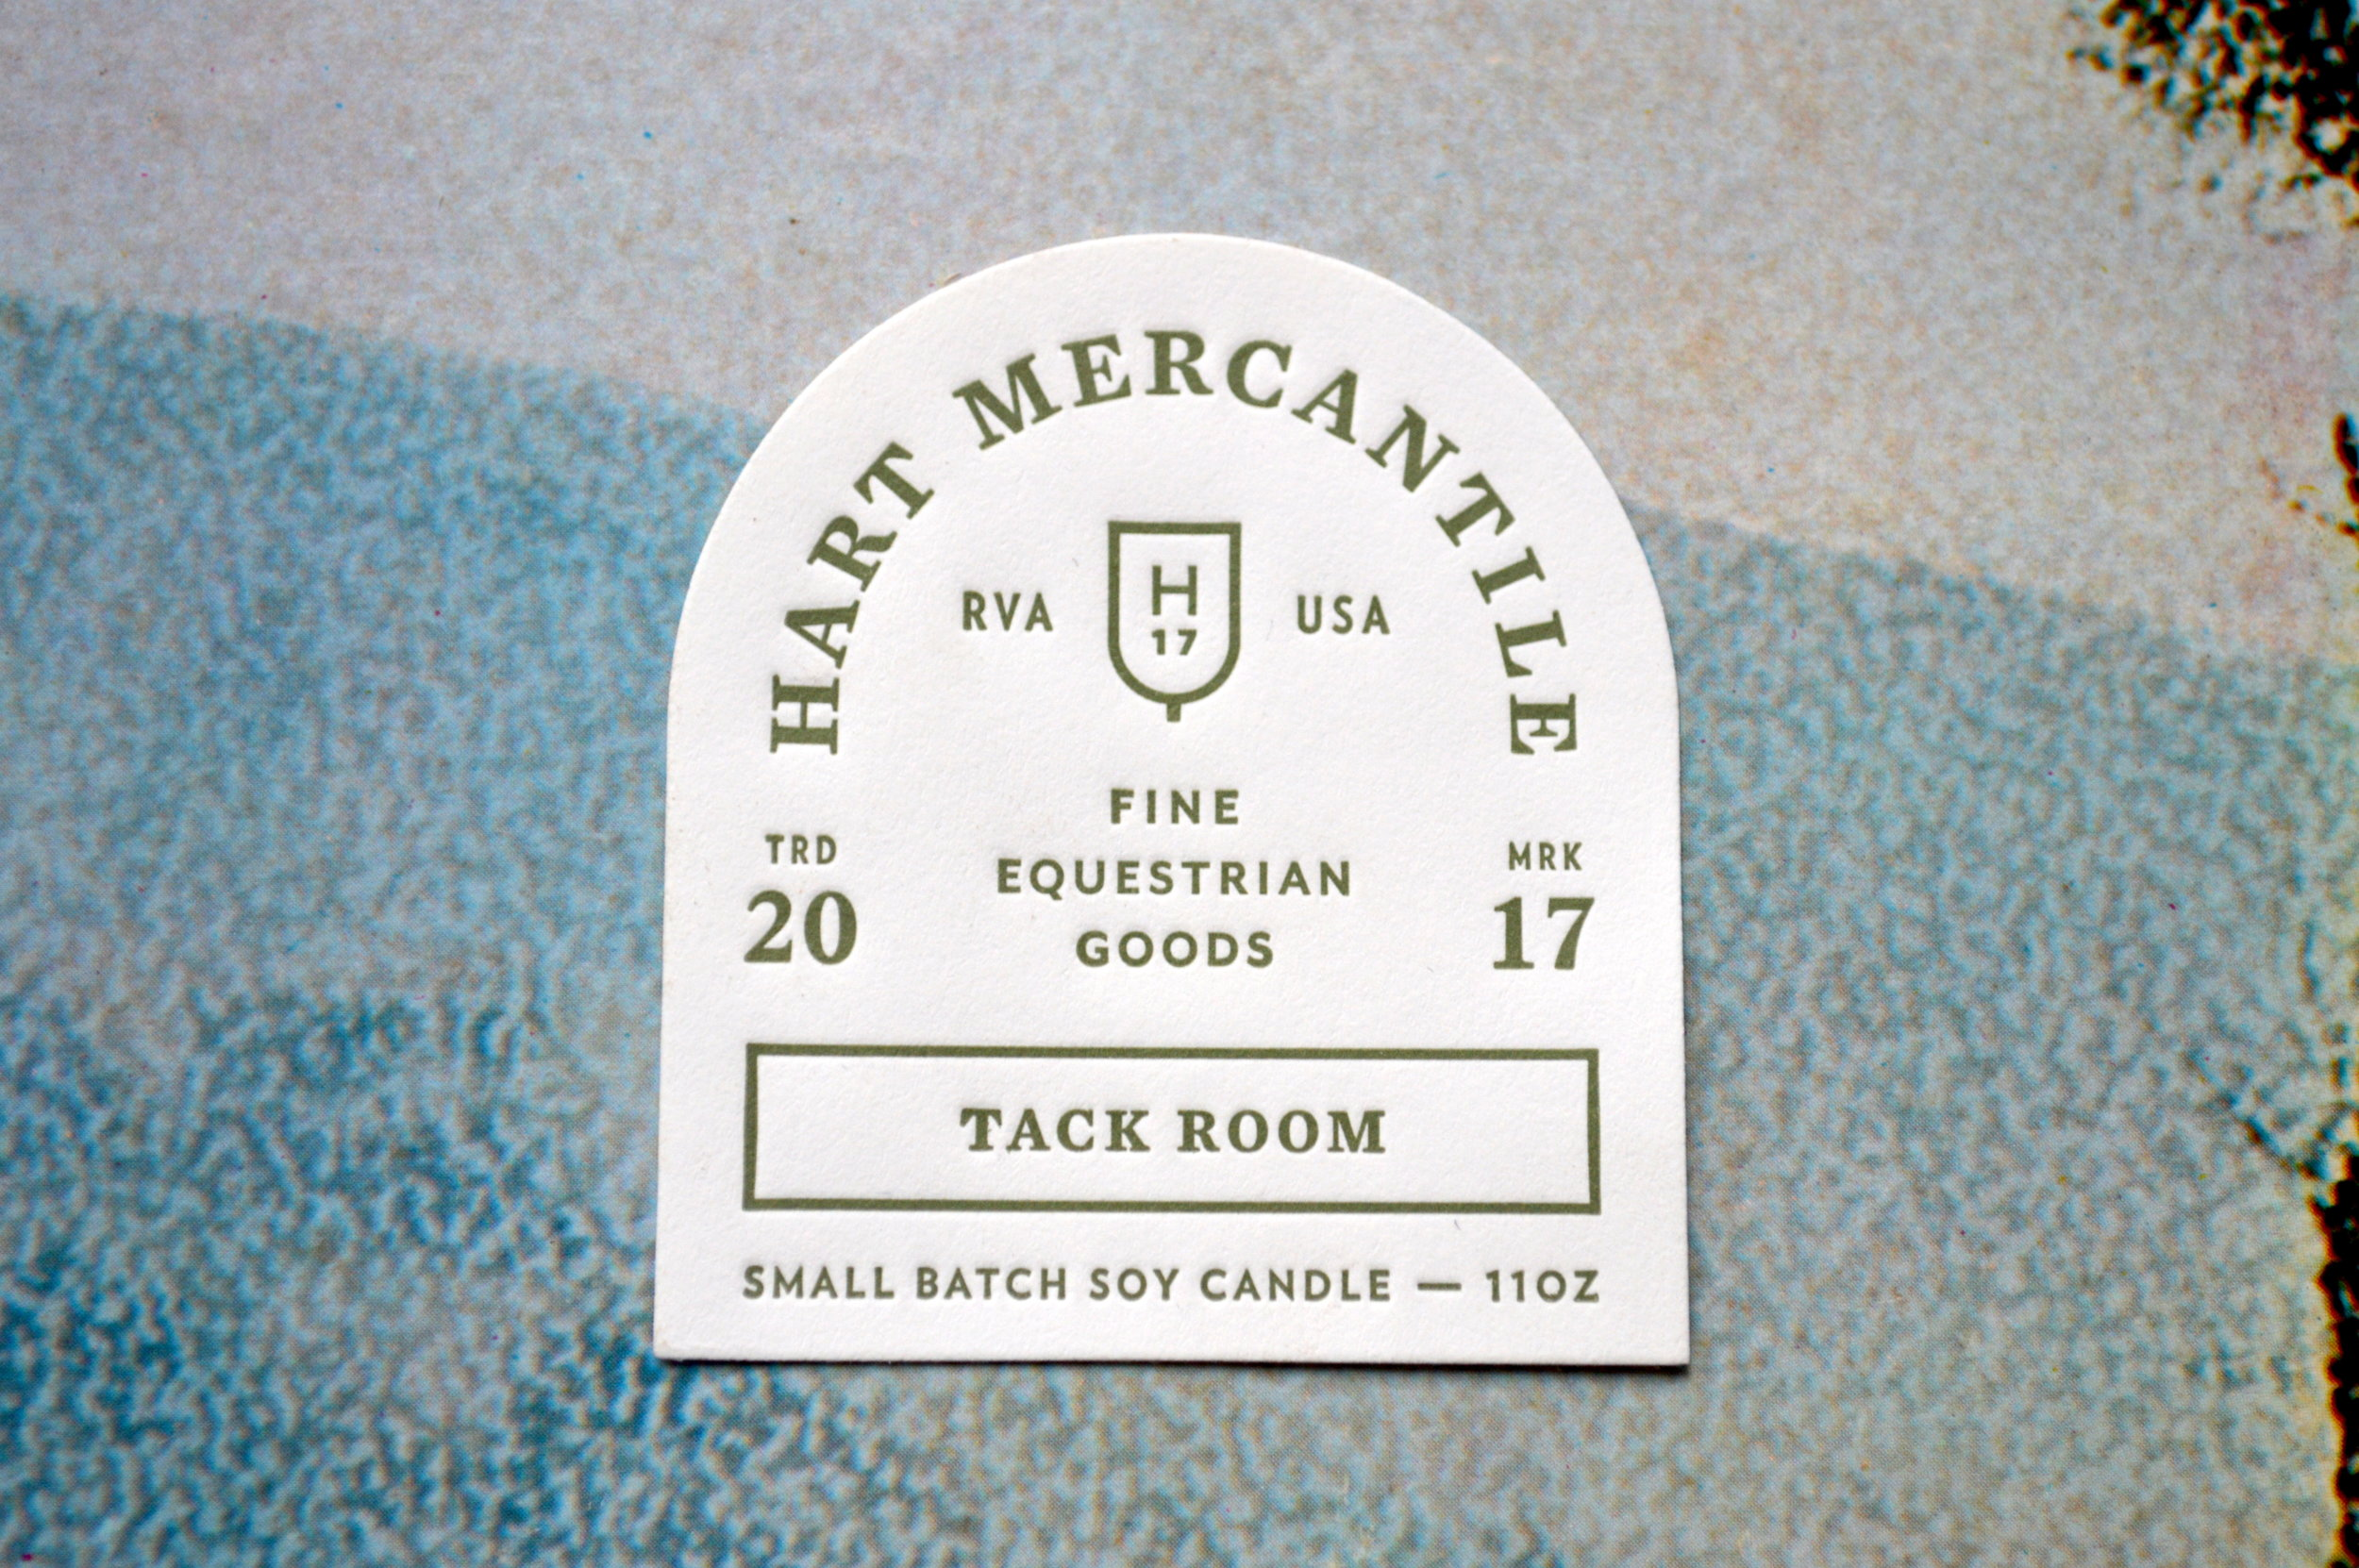 hart mercantile candle label.JPG